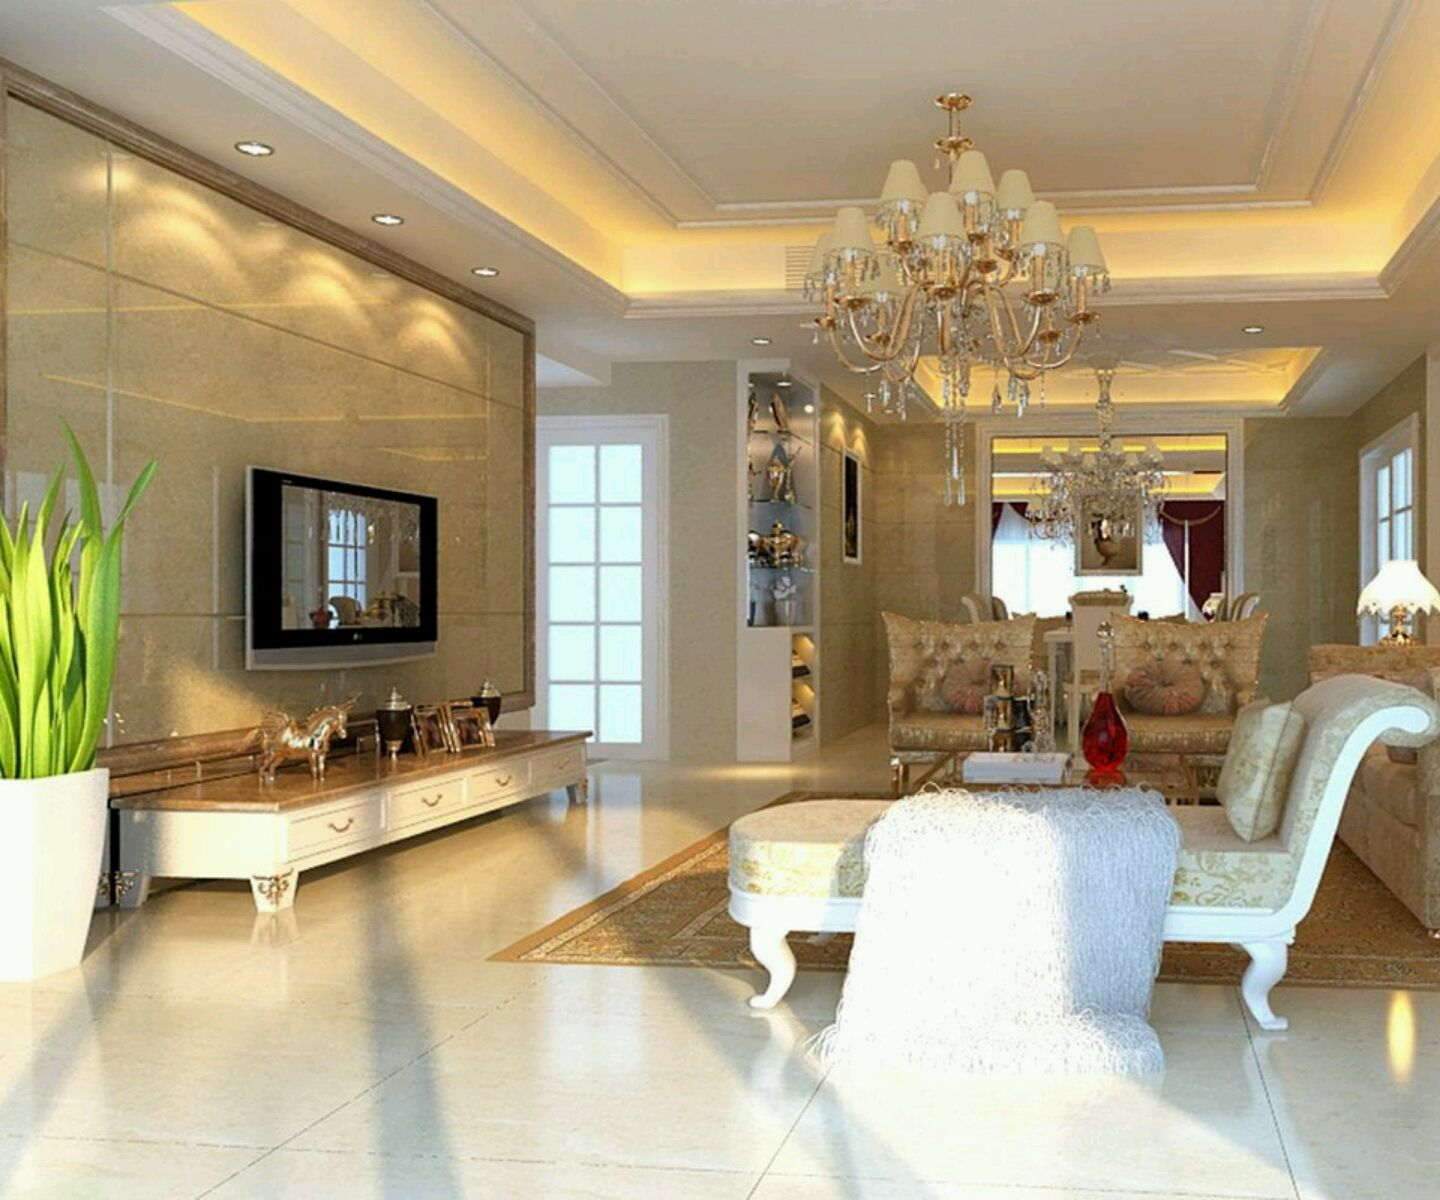 Luxury homes interior decoration living room designs ideas Luxury homes  interior decoration living room designs ideas NewLuxury Home Interior Designs  22 Stunning Interior Design Ideas  . Designer Luxury Homes. Home Design Ideas